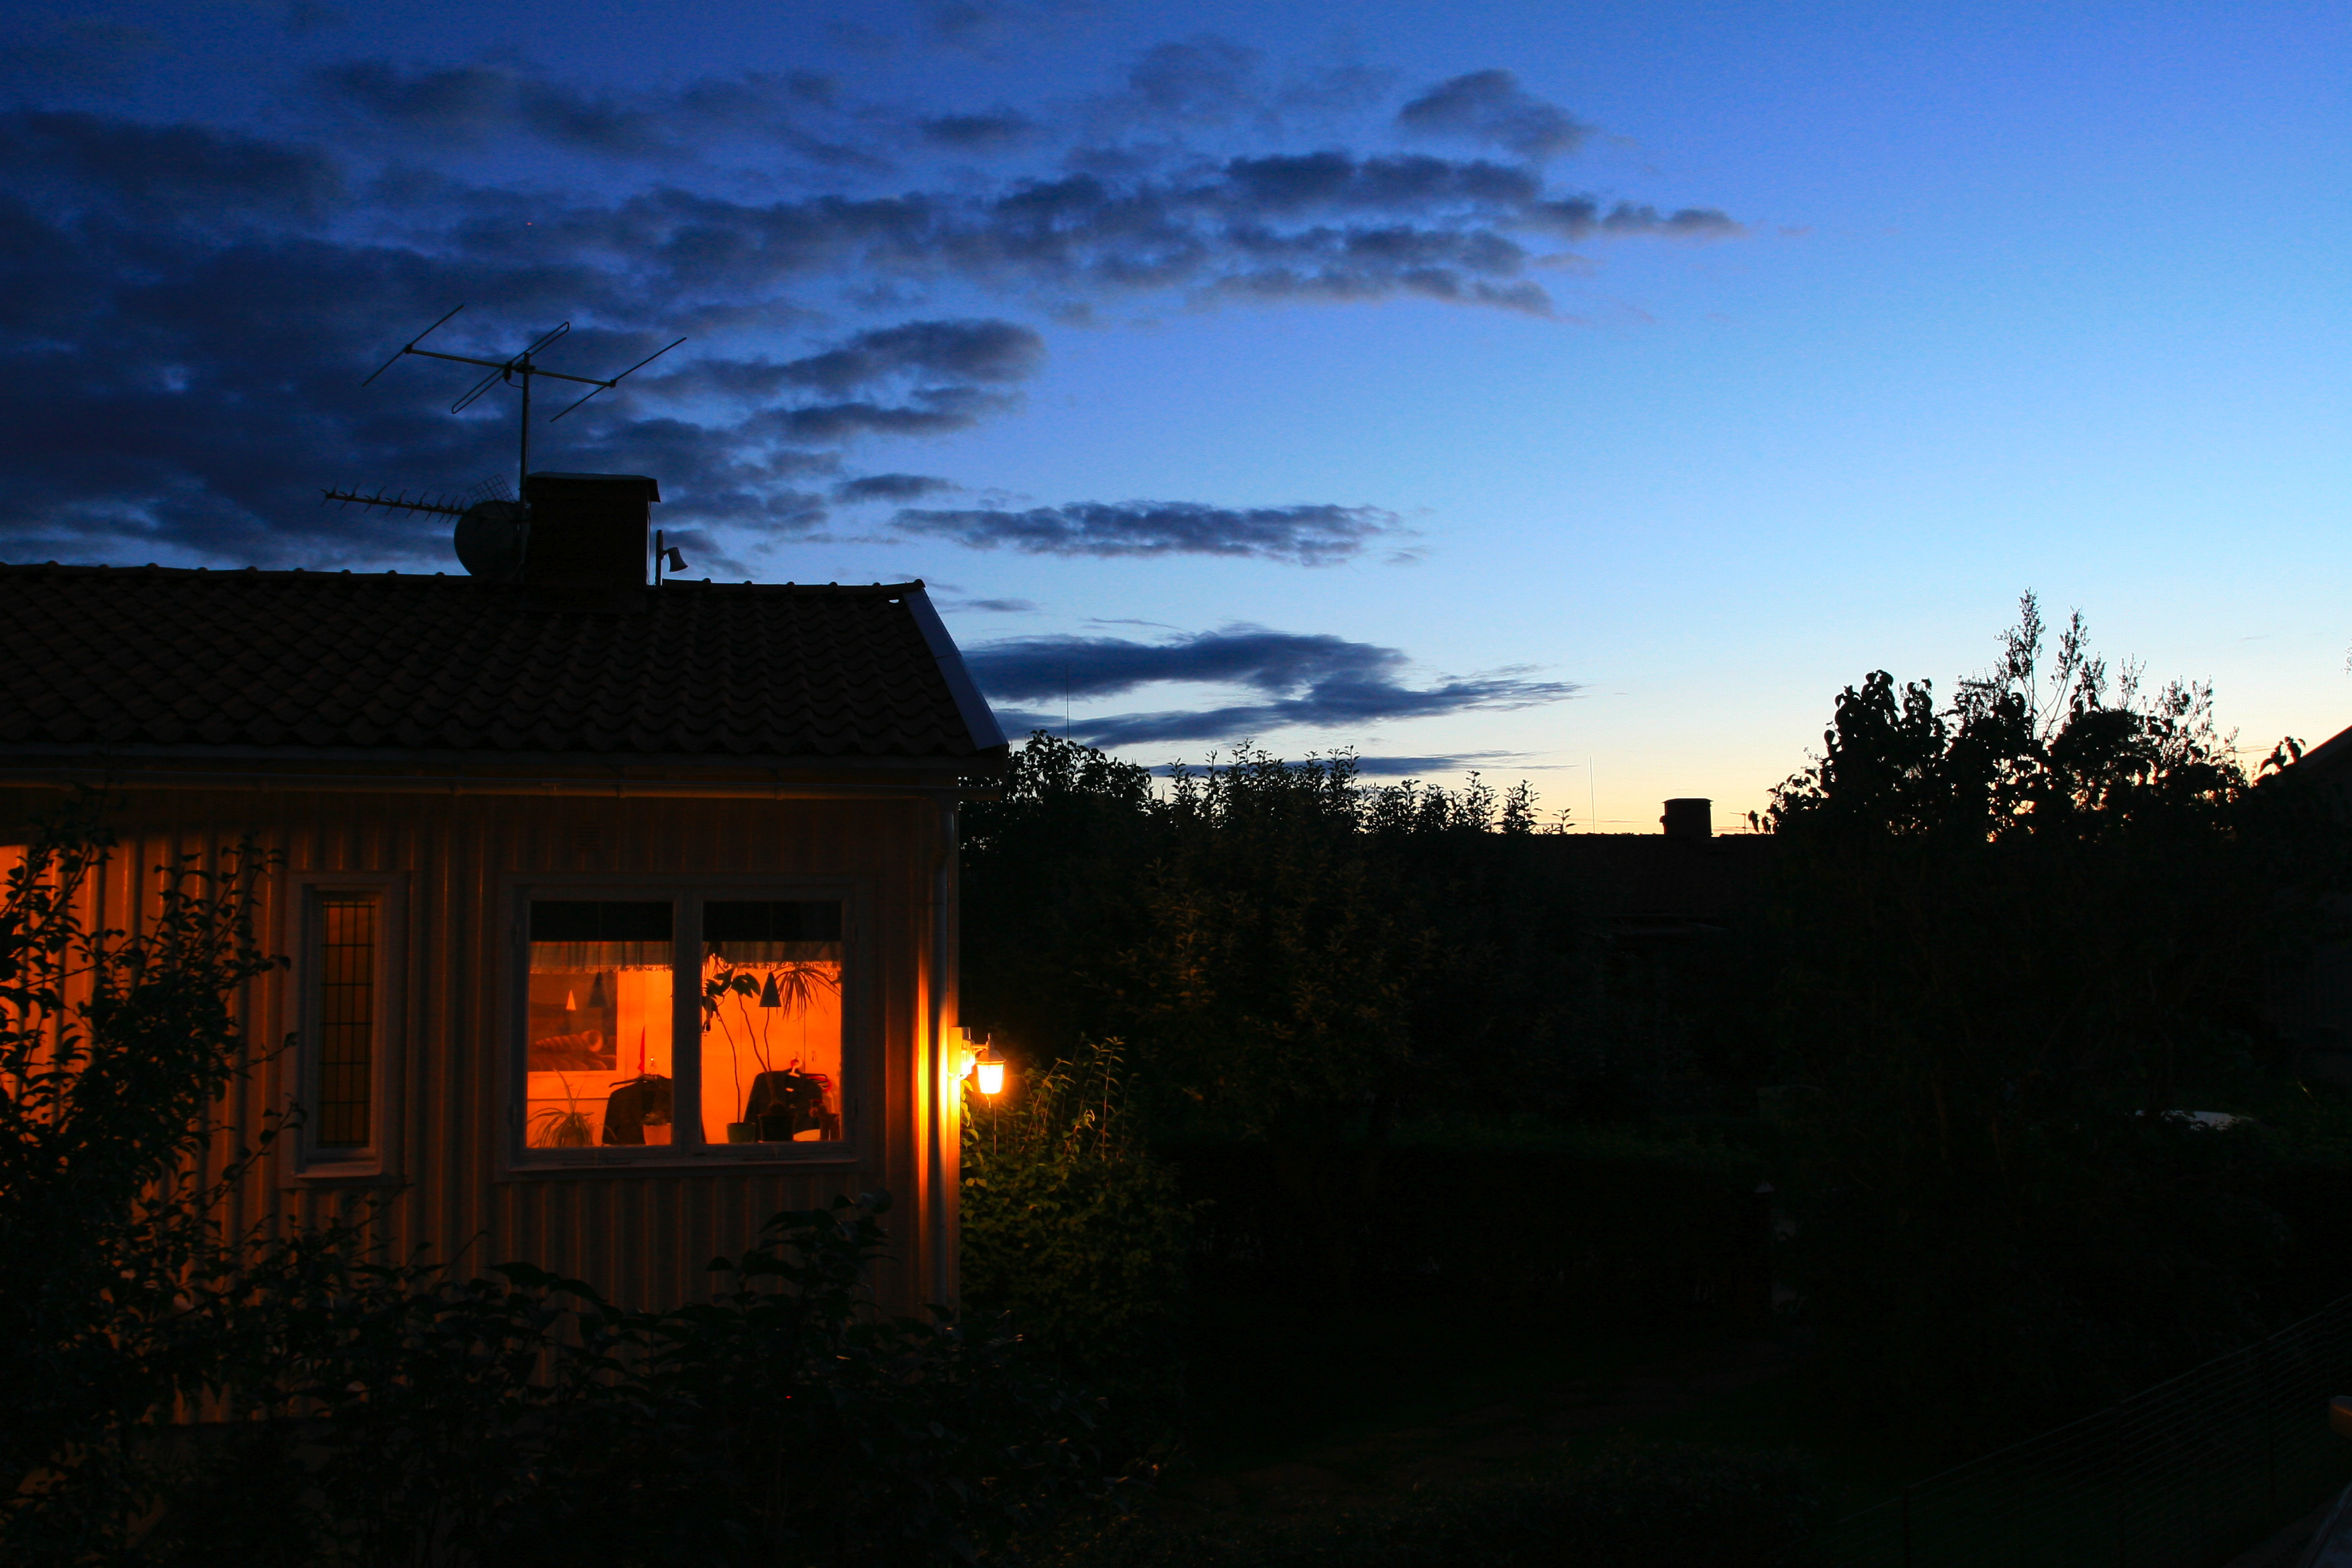 House at Night, night, sky, sunset, warm, HQ Photo